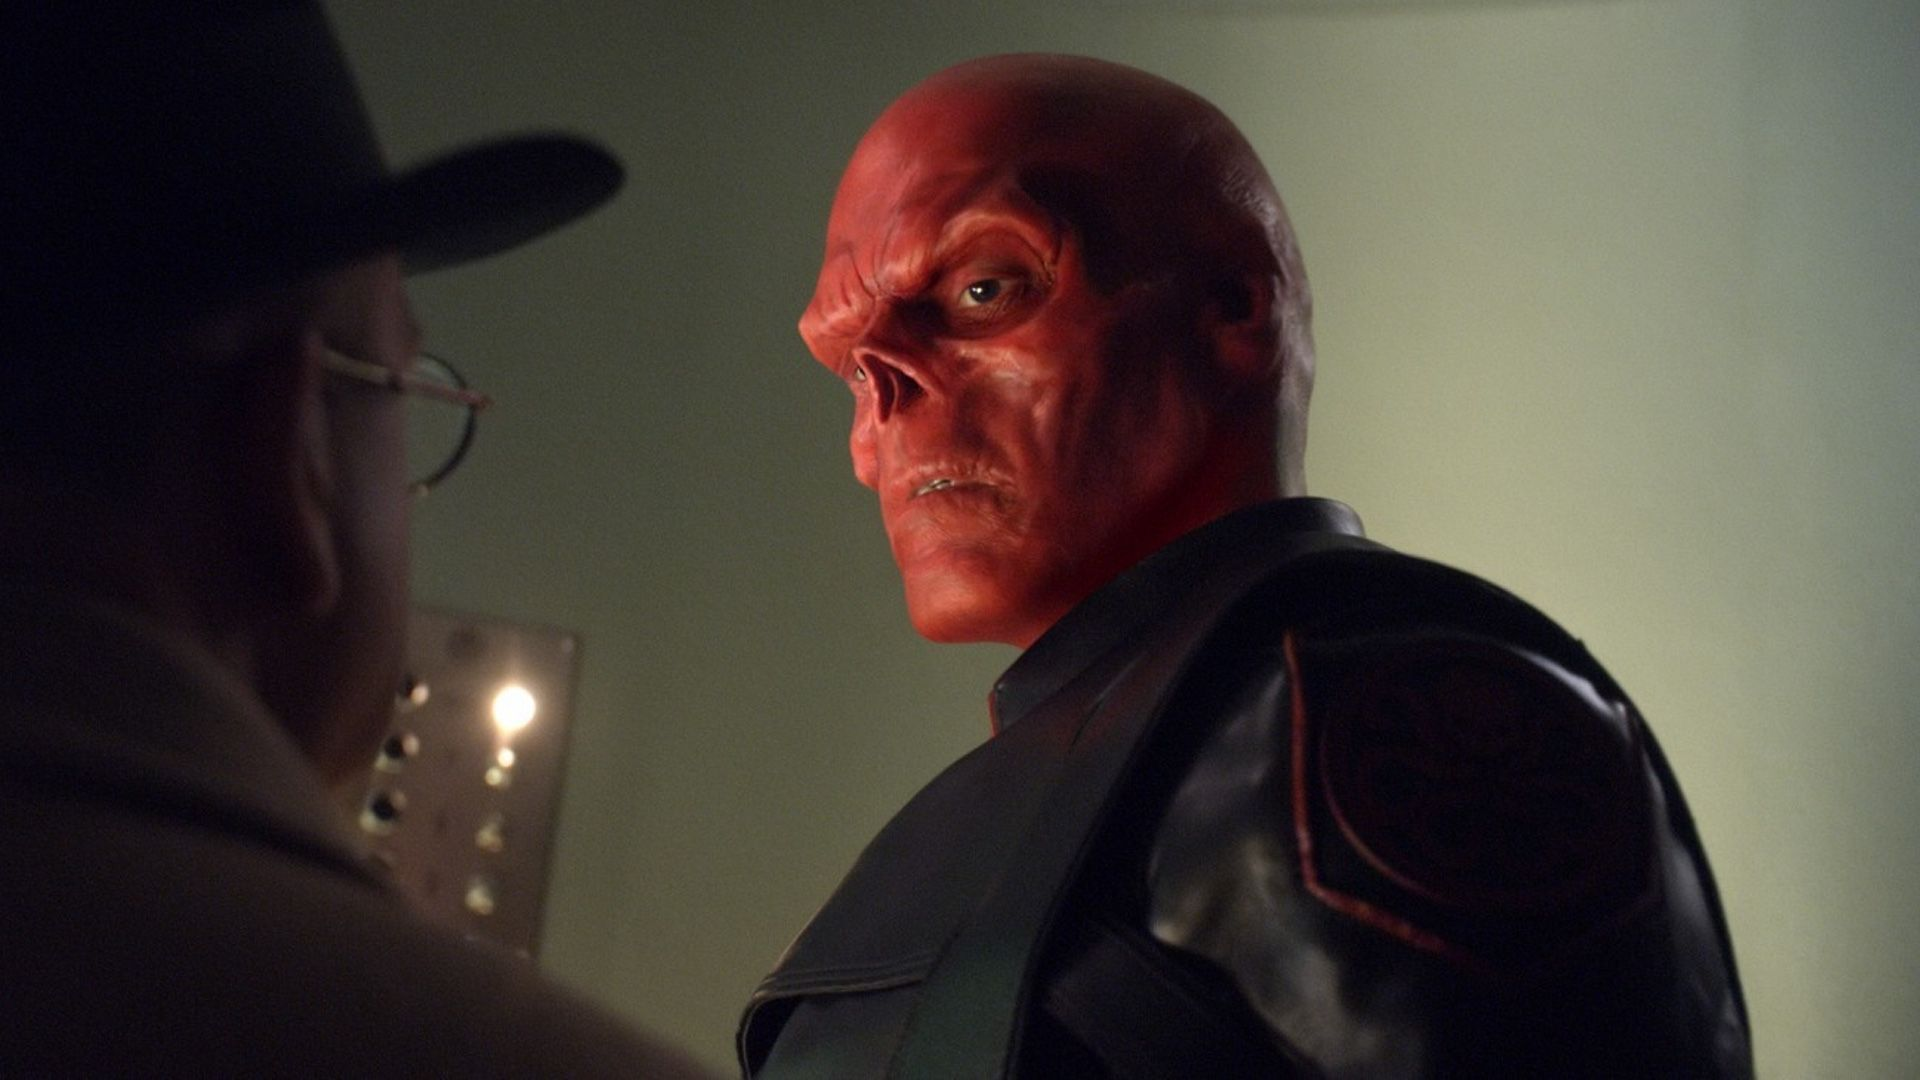 Will We See Red Skull In More MCU Movies?